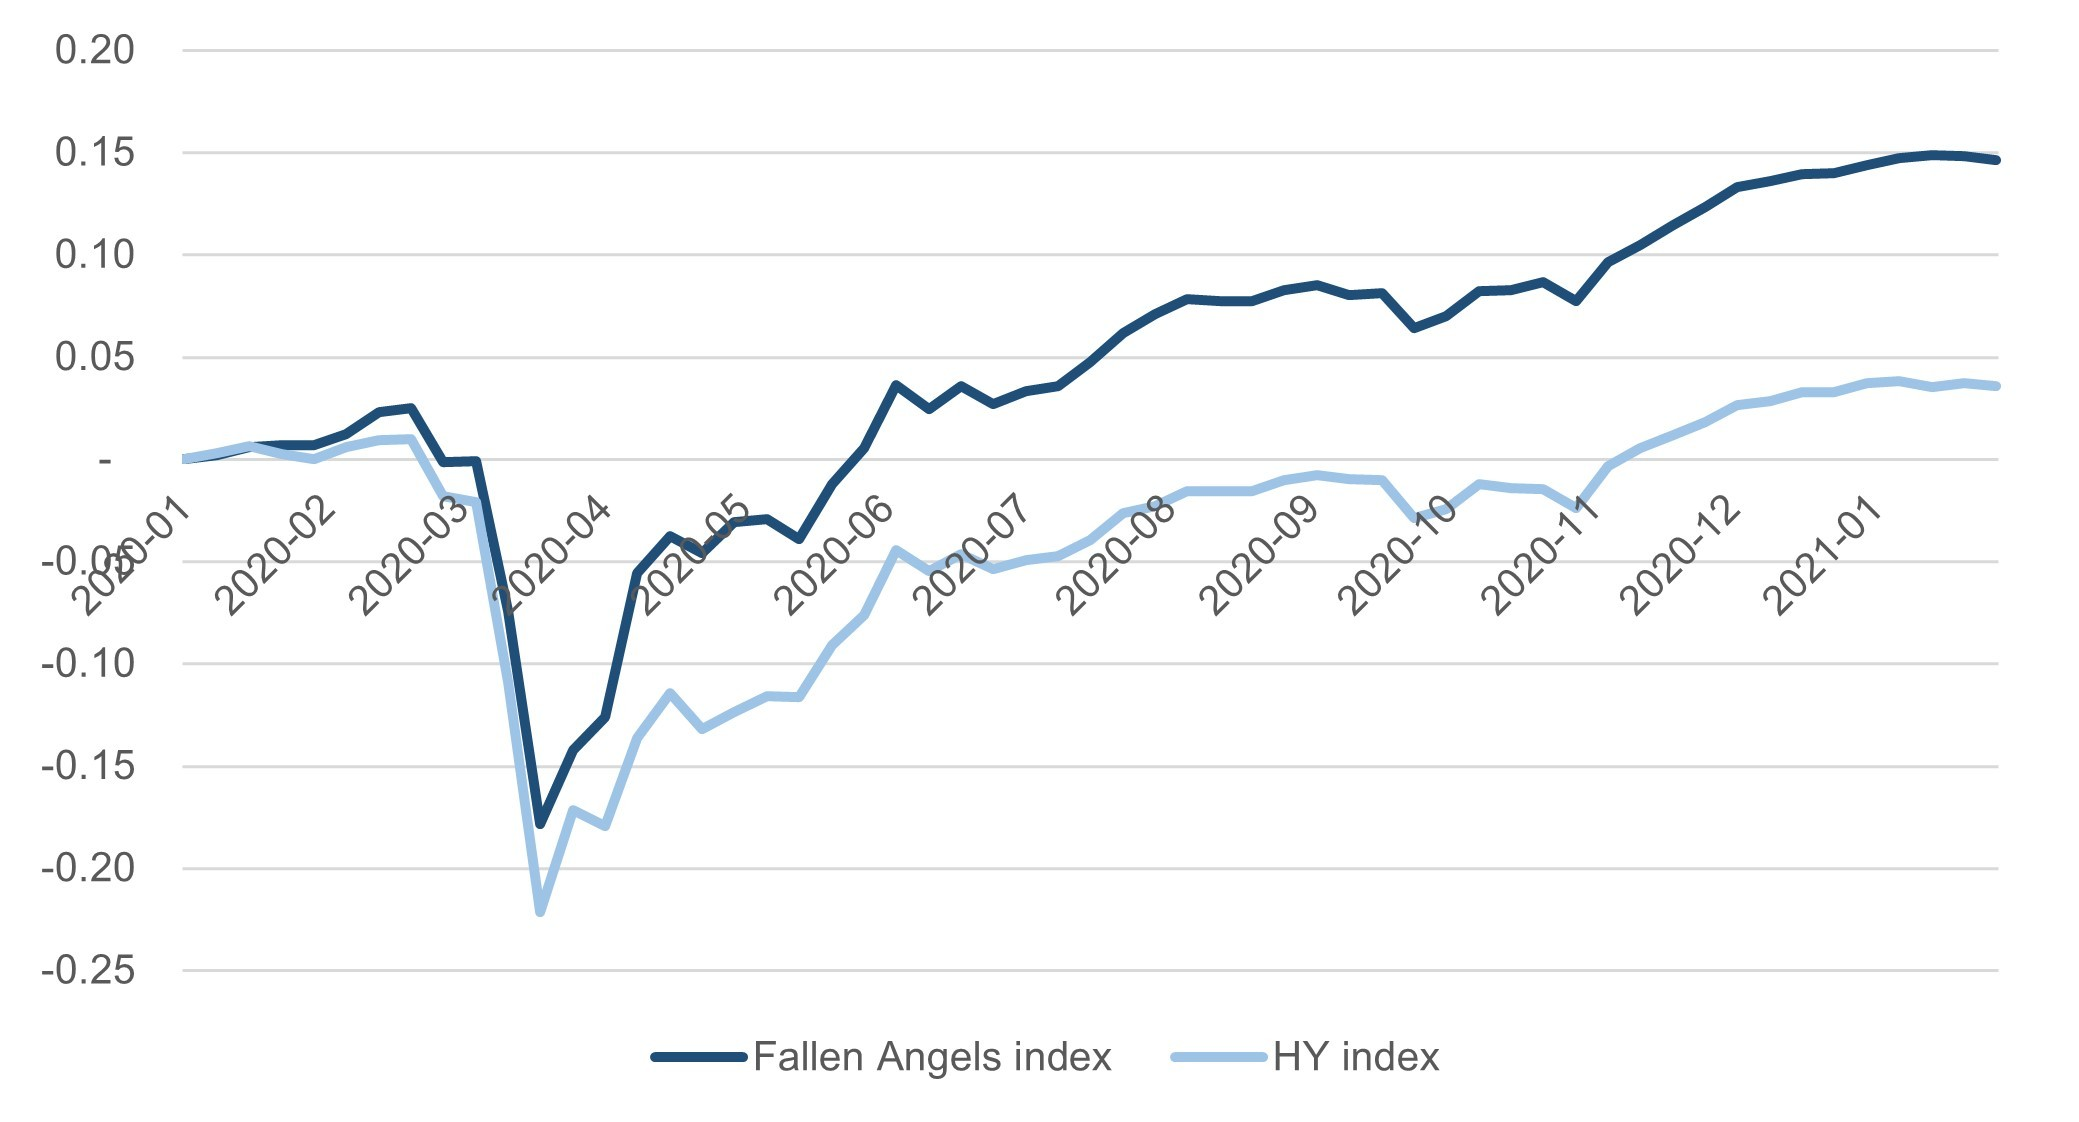 Fallen angels vs. High yield